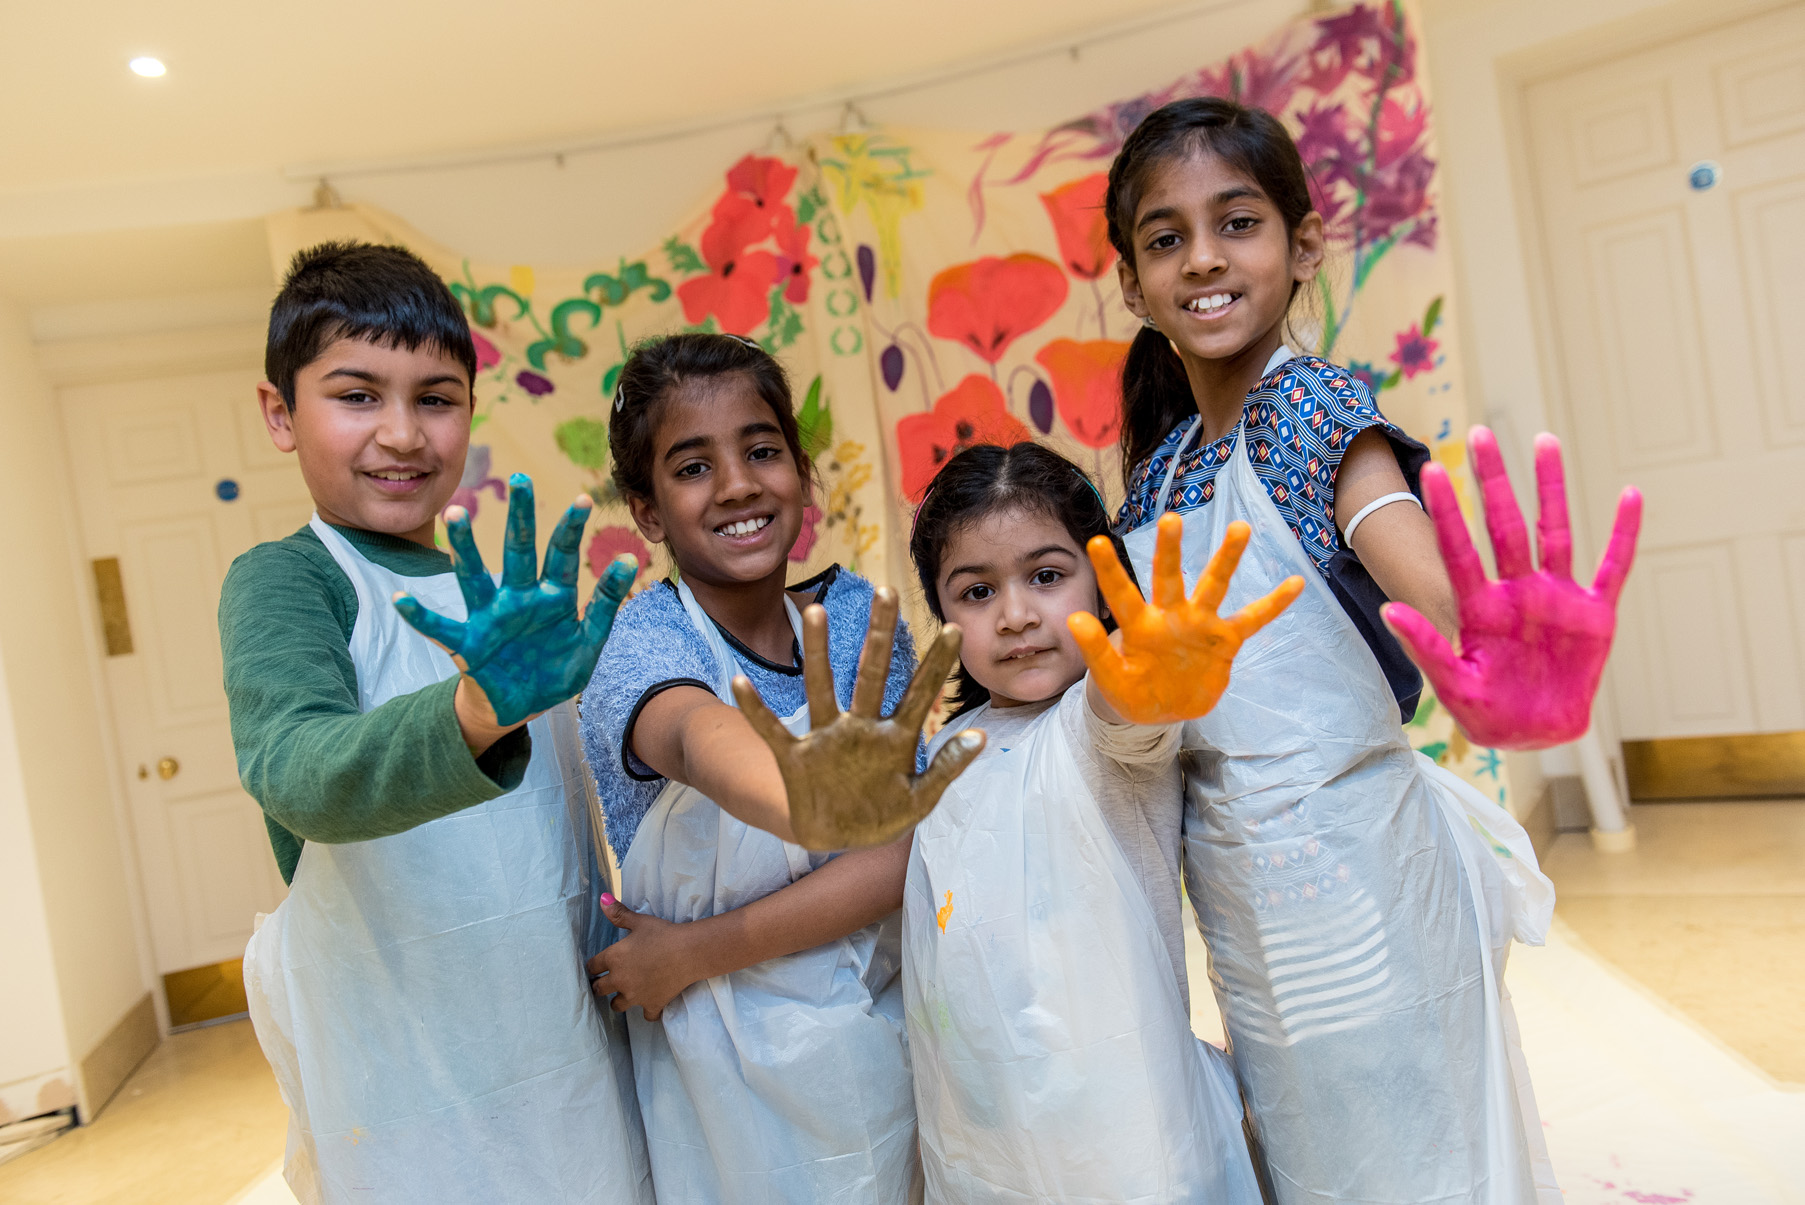 Botanical Bentley - An Arts Council England supported project at Bentley Priory Museum, which involved creating two permanent murals in the museum cafe and Learning Centre, and co-creating a temporary mural with museum visitors. Read more here.